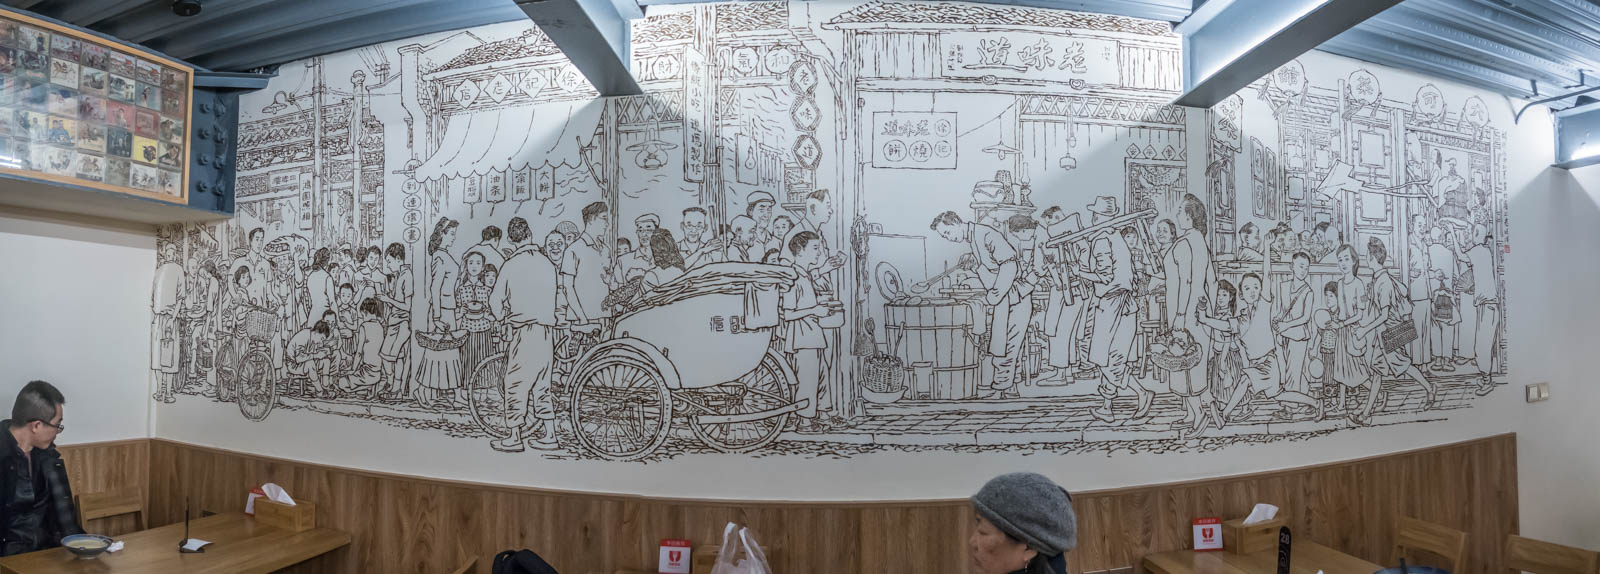 Mural of old Shanghai in the breakfast cafe